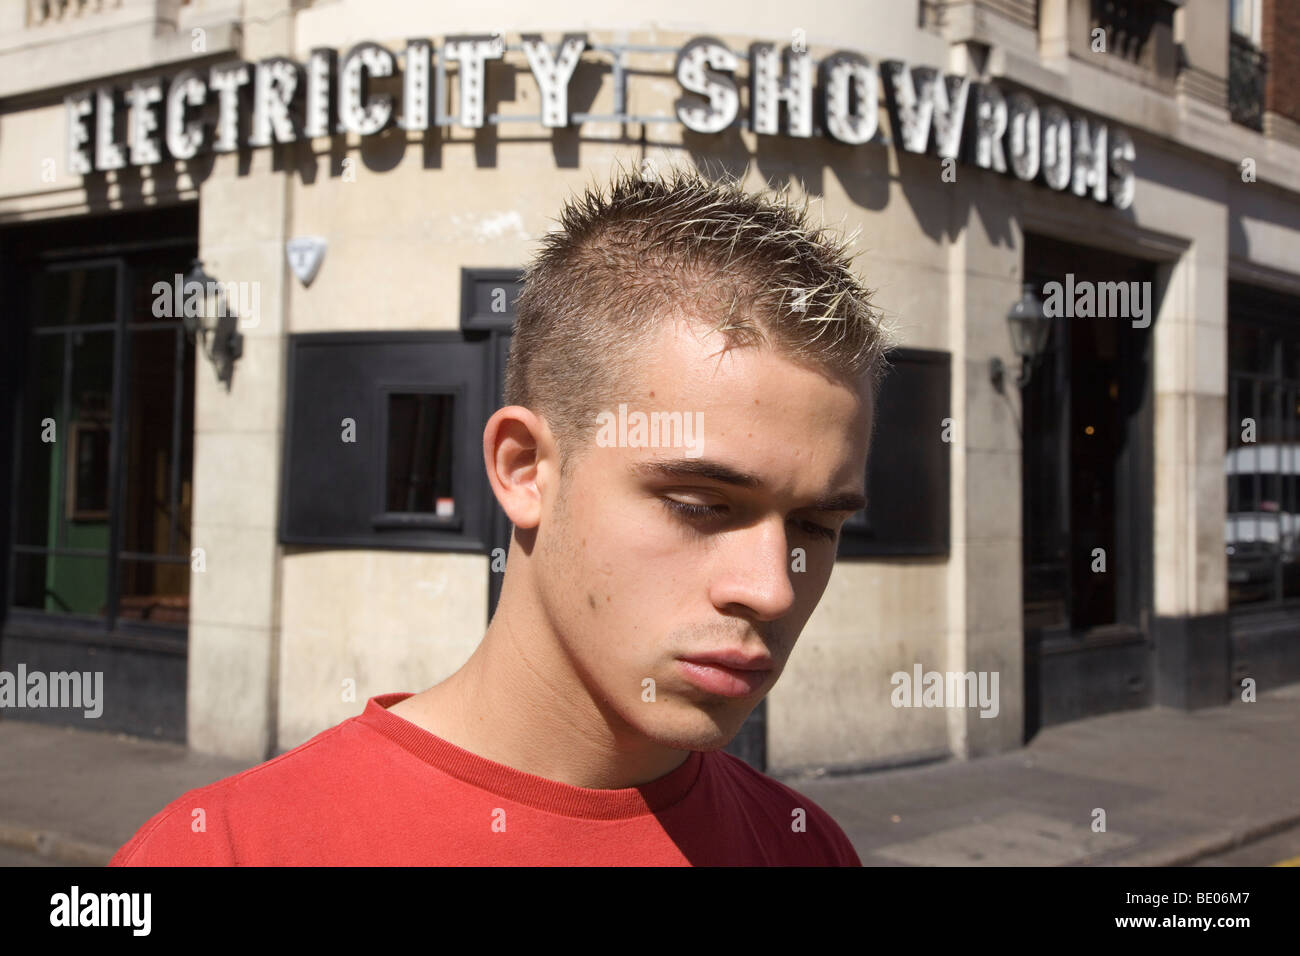 Young man with spikey short hair outside the Electricity Showrooms bar in Hoxton, London - Stock Image